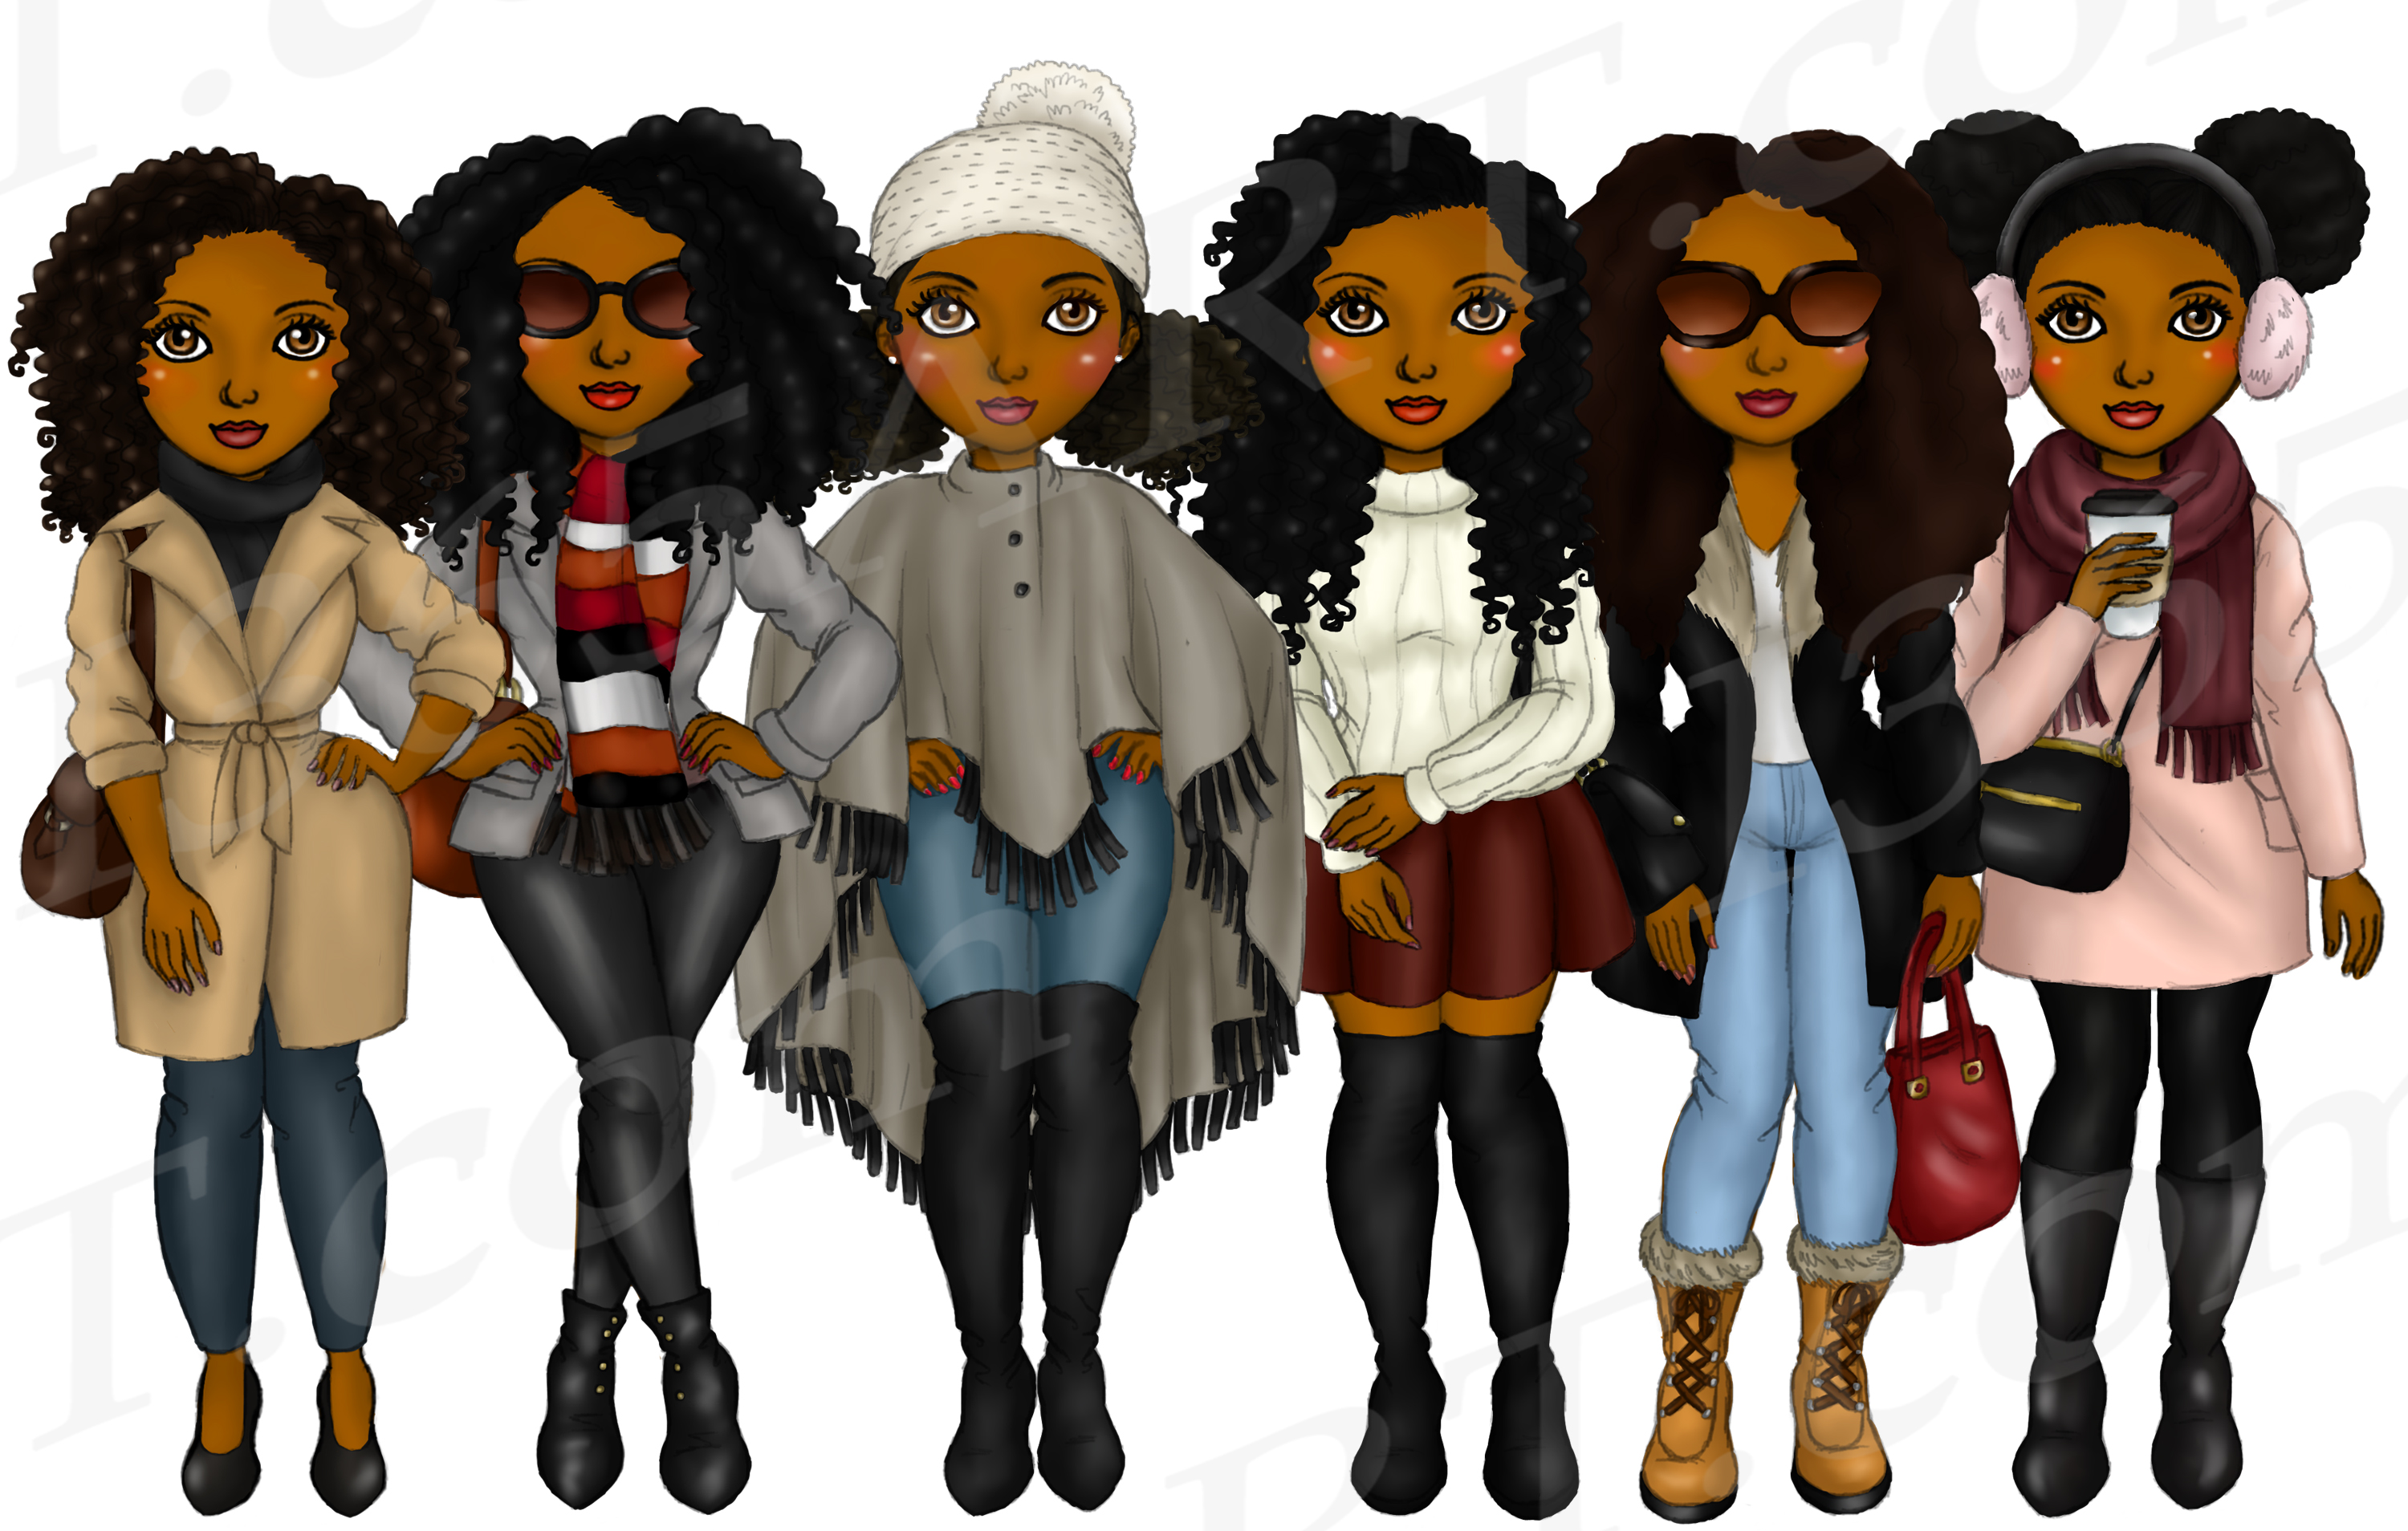 Winter Fashion Girls Black Natural Hair Planner Clipart example image 2